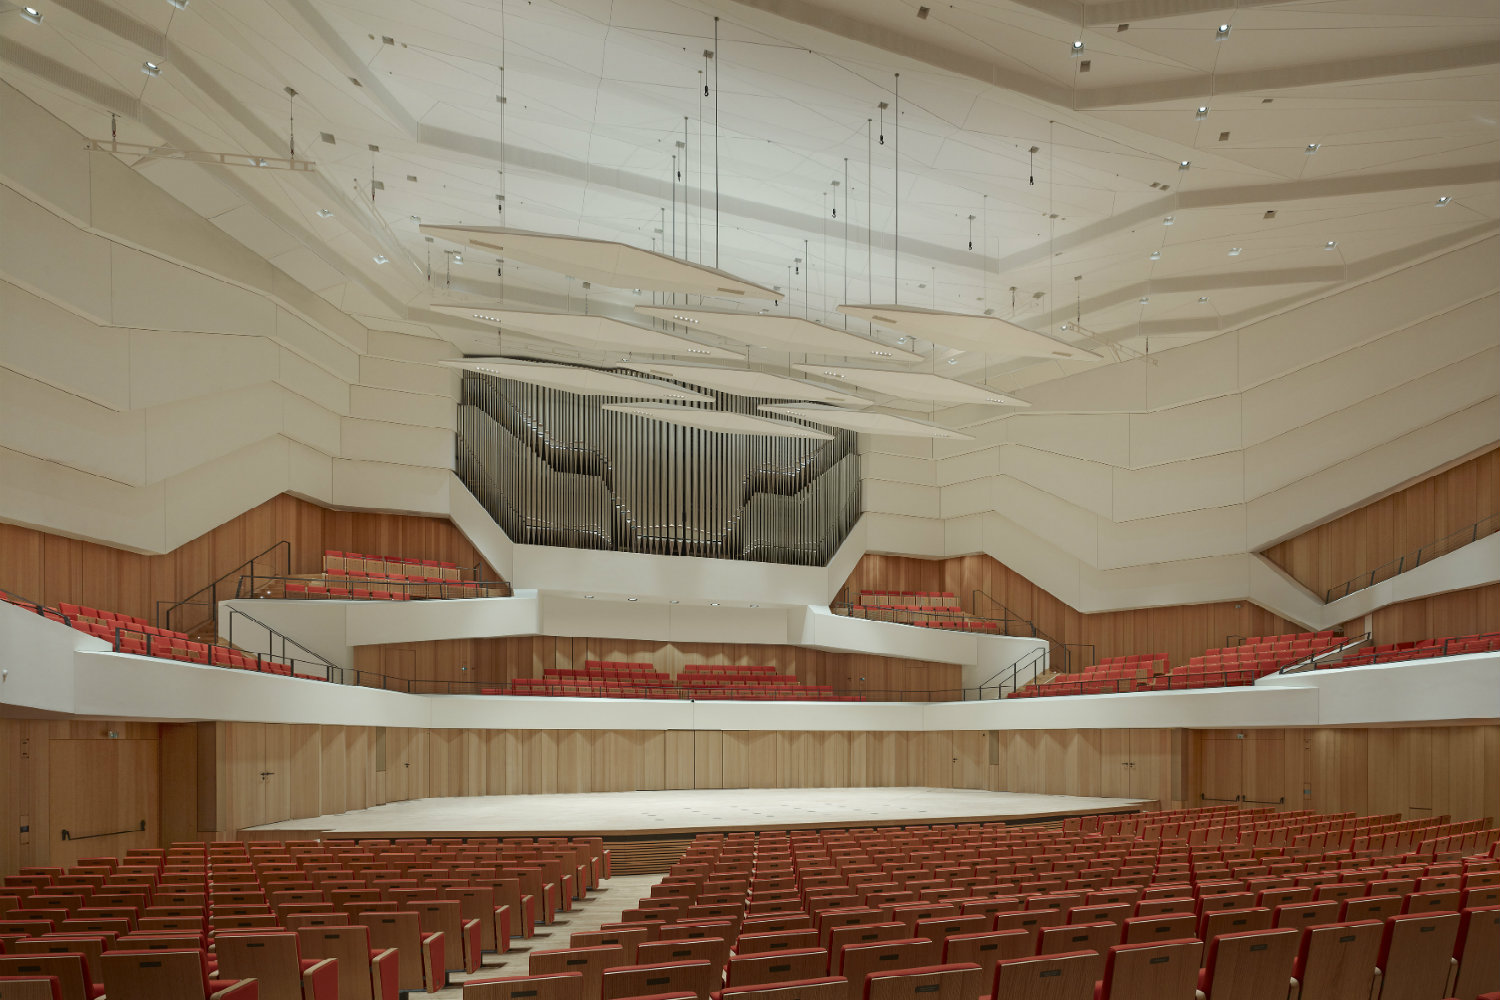 Located in the middle of Dresden's old town, the Kulturpalast highlights with its glass facades and striking roof structure. ADA (WSDG) was the responsible acoustician and consultant for the renovation. Interior Audience Perspective